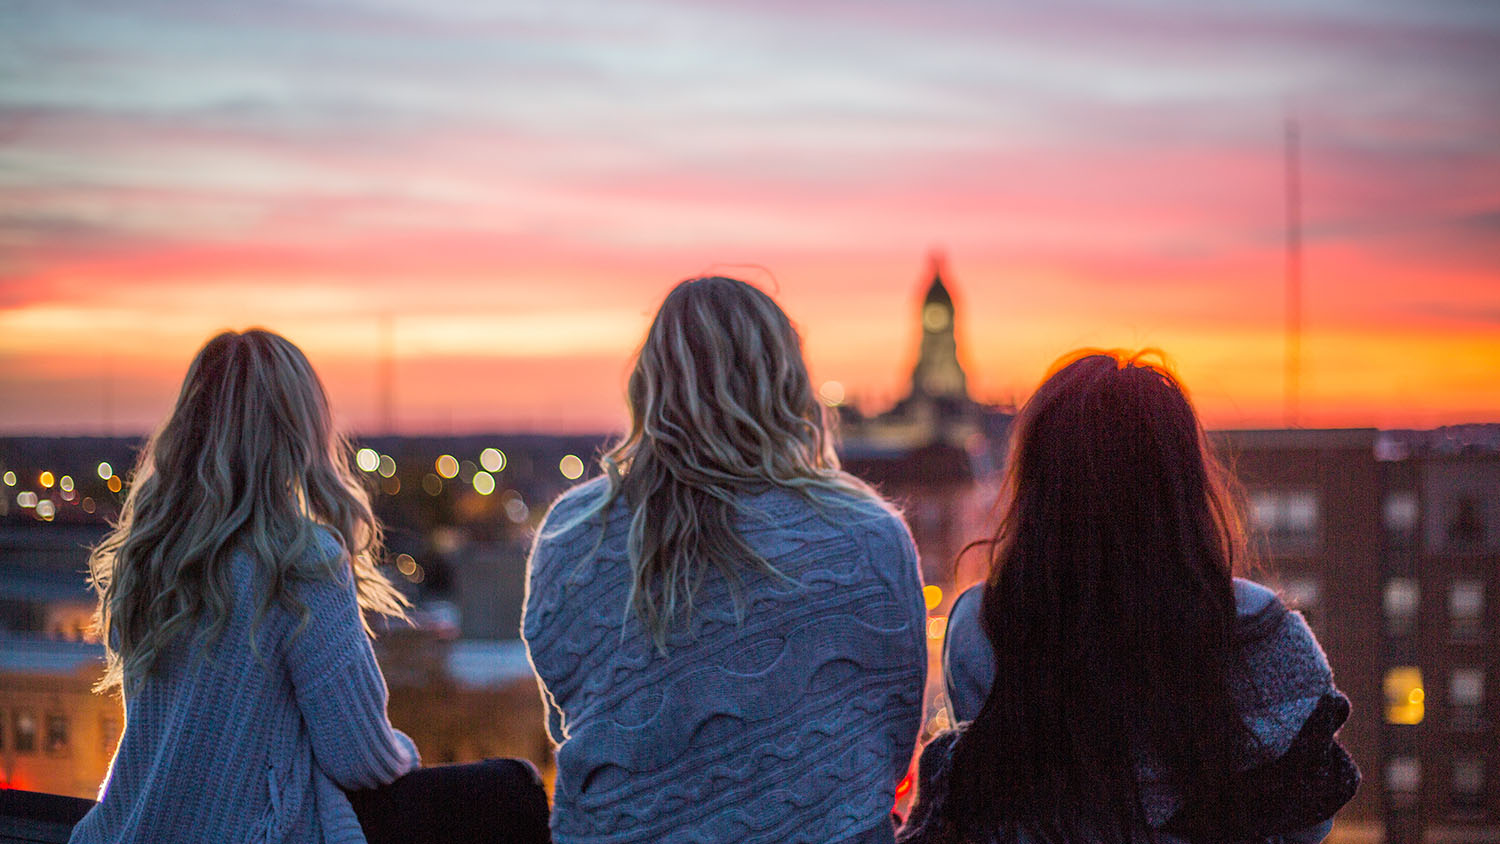 Friends on a girls getaway on a rooftop looking over the city at the sunset.